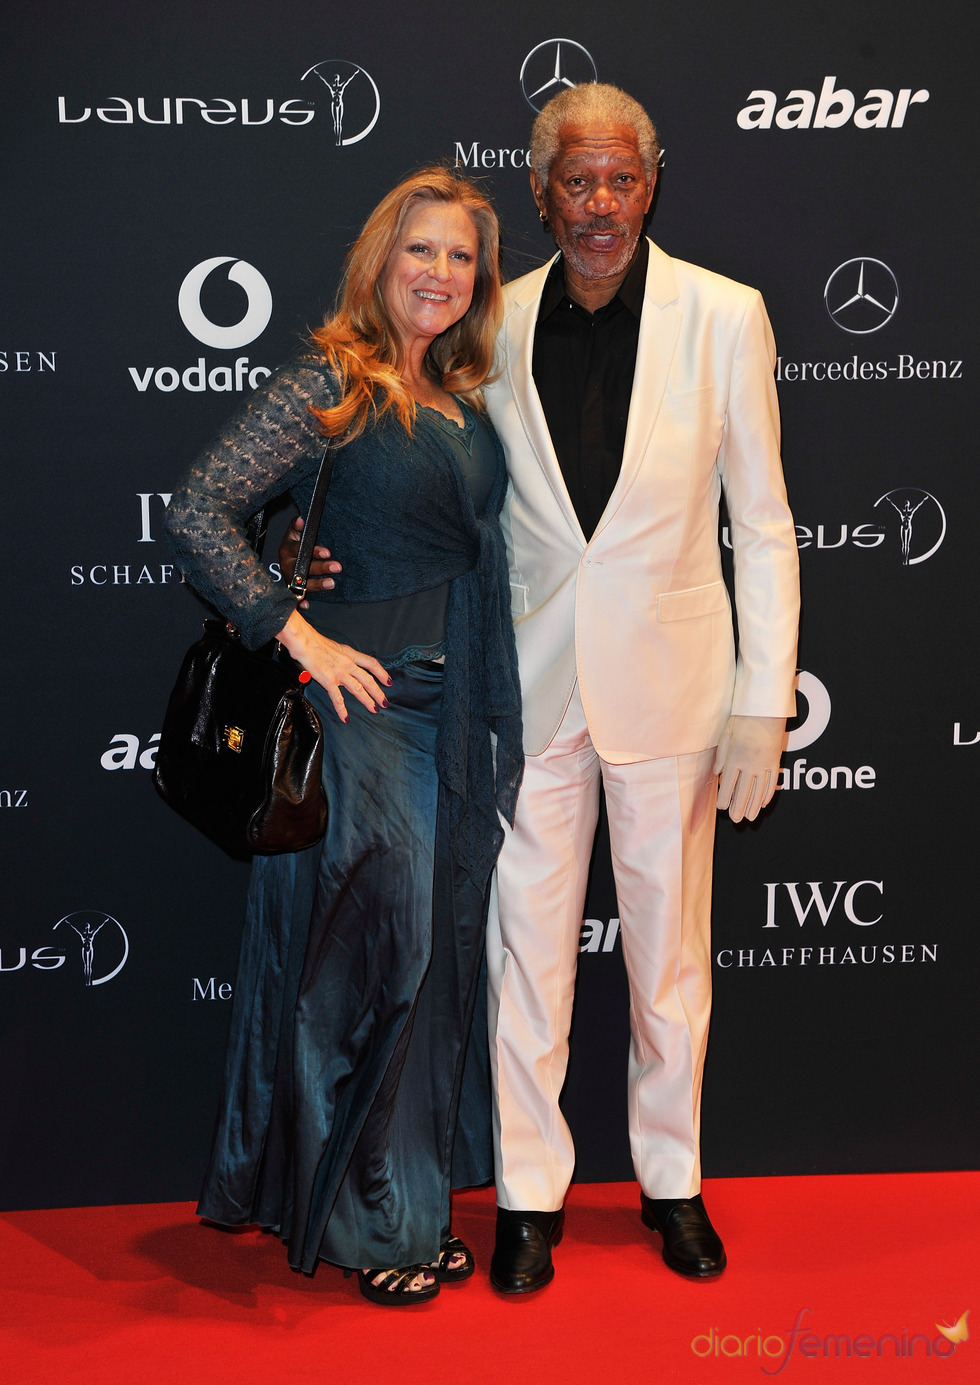 El actor americano Morgan Freeman en la Laureus Welcome Party